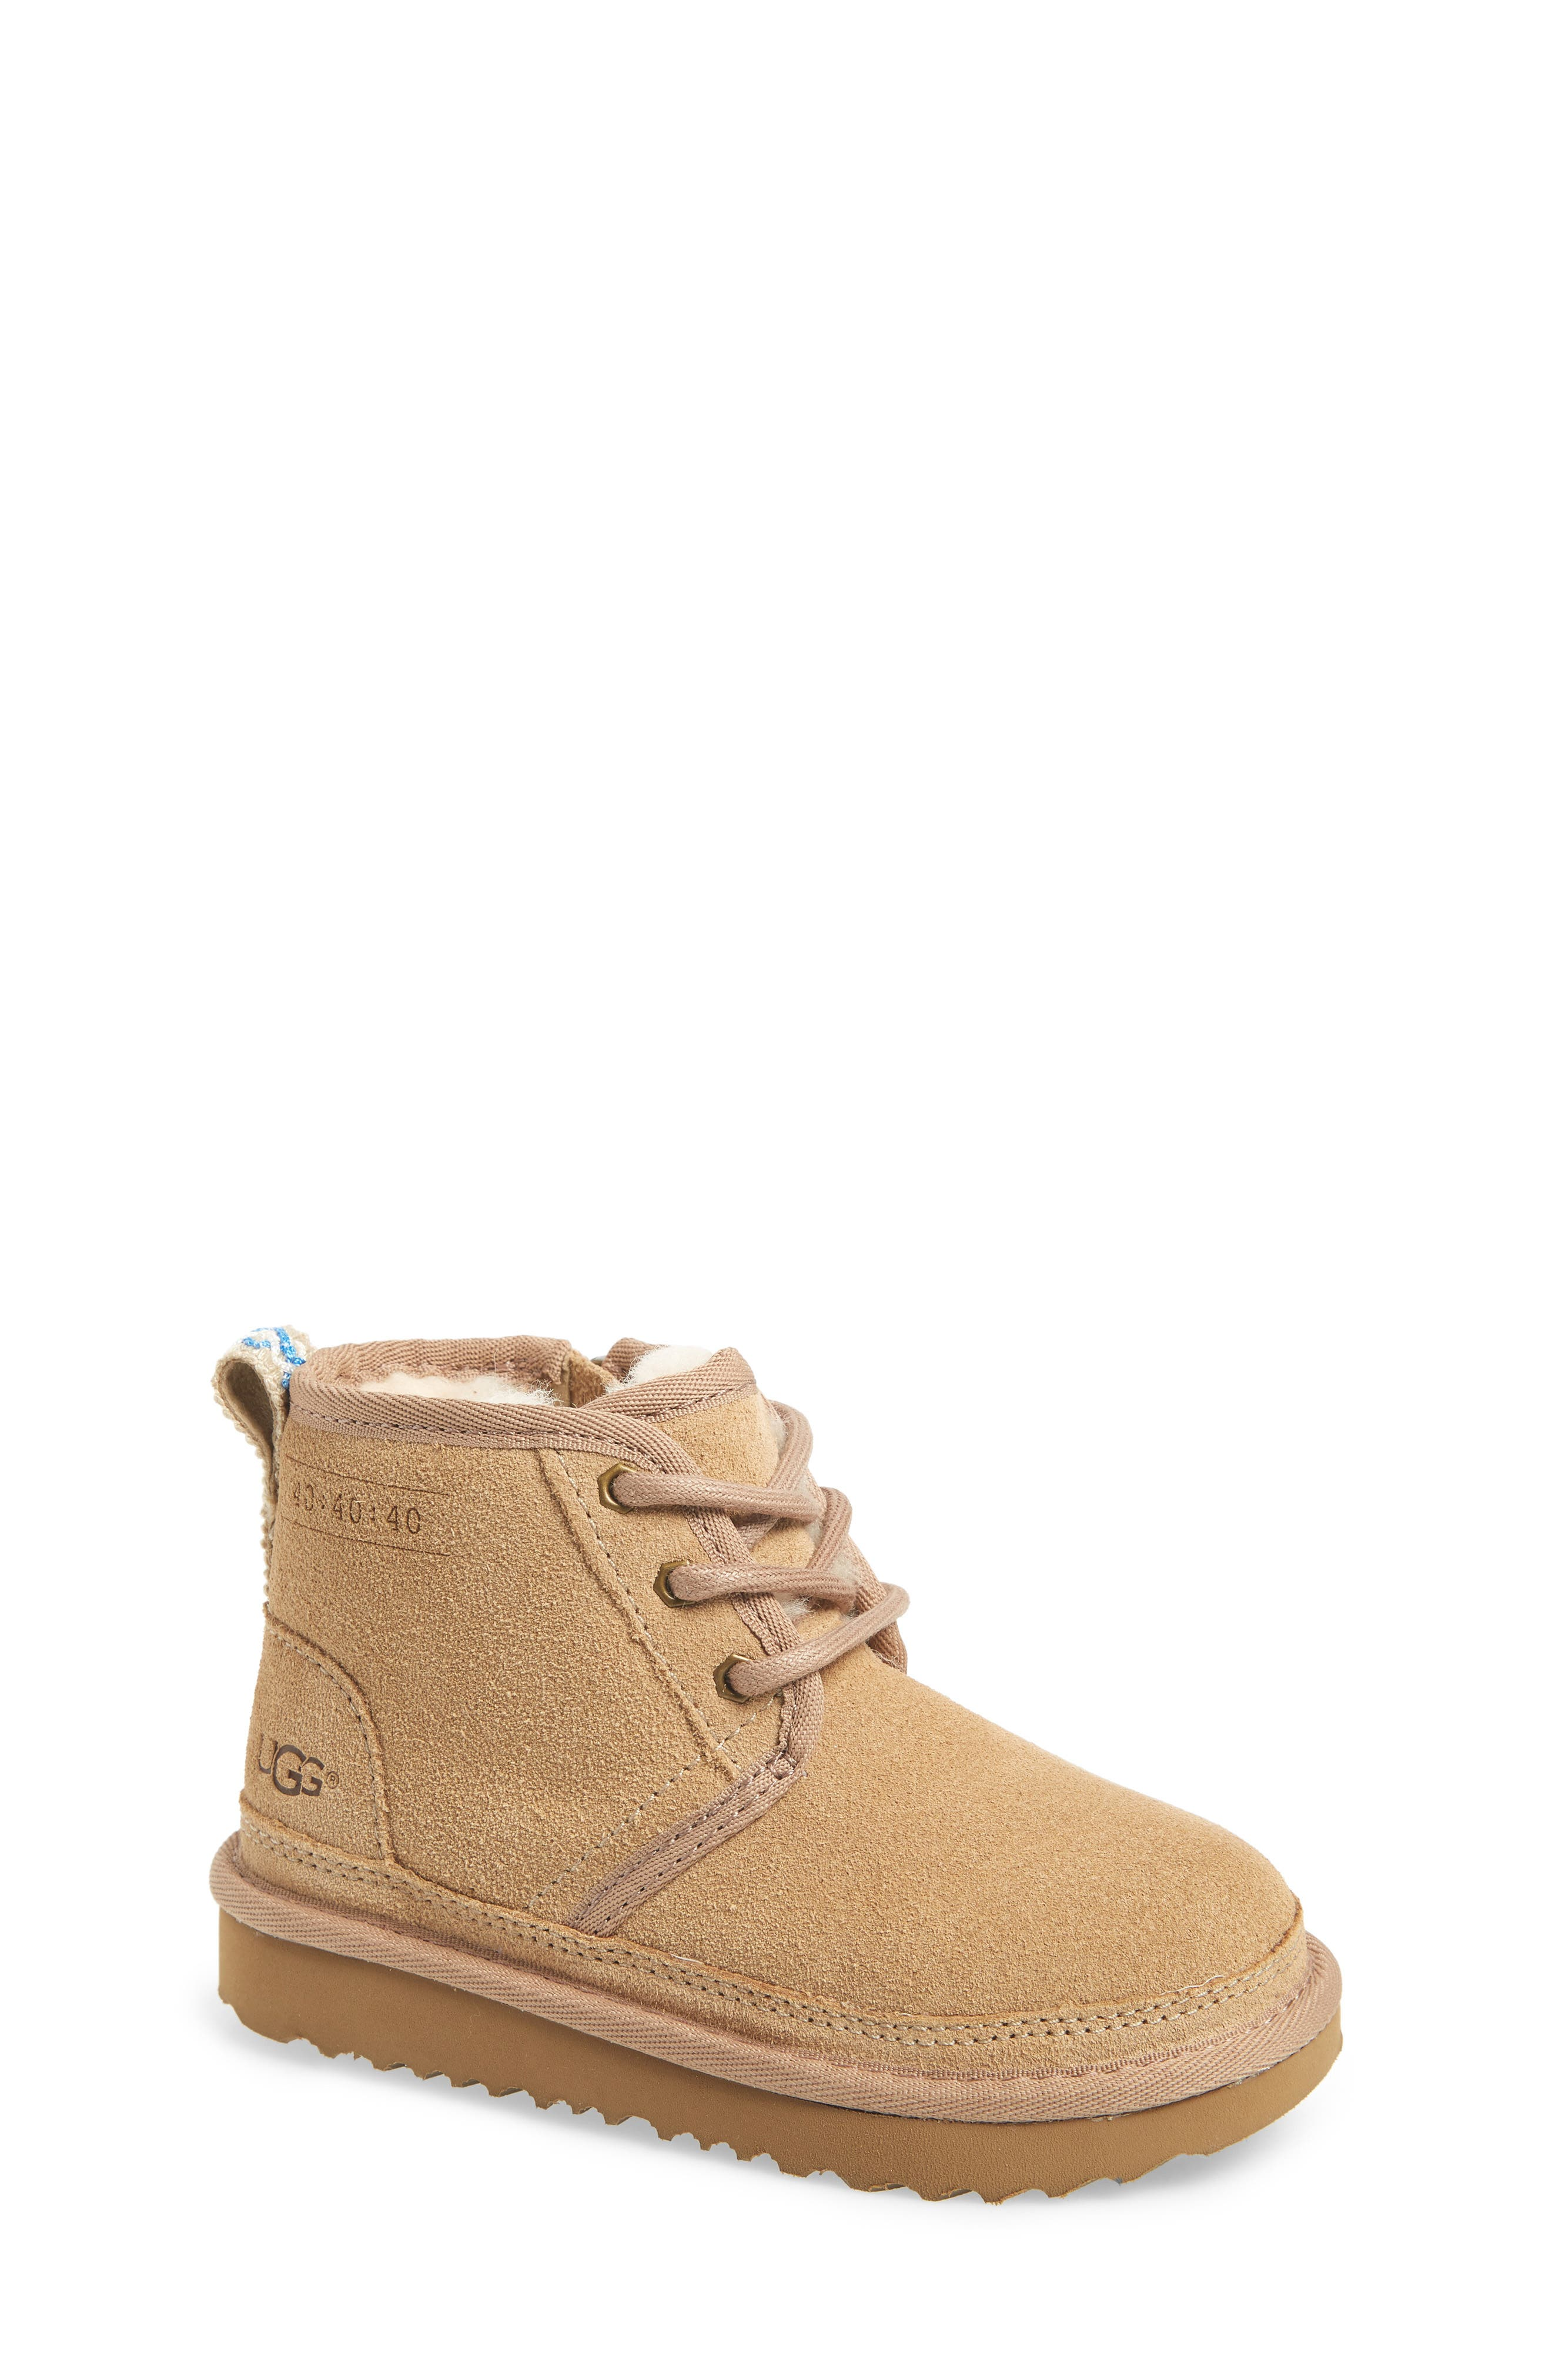 Neumel 40:40:40 Anniversary Boot,                             Main thumbnail 1, color,                             SAND